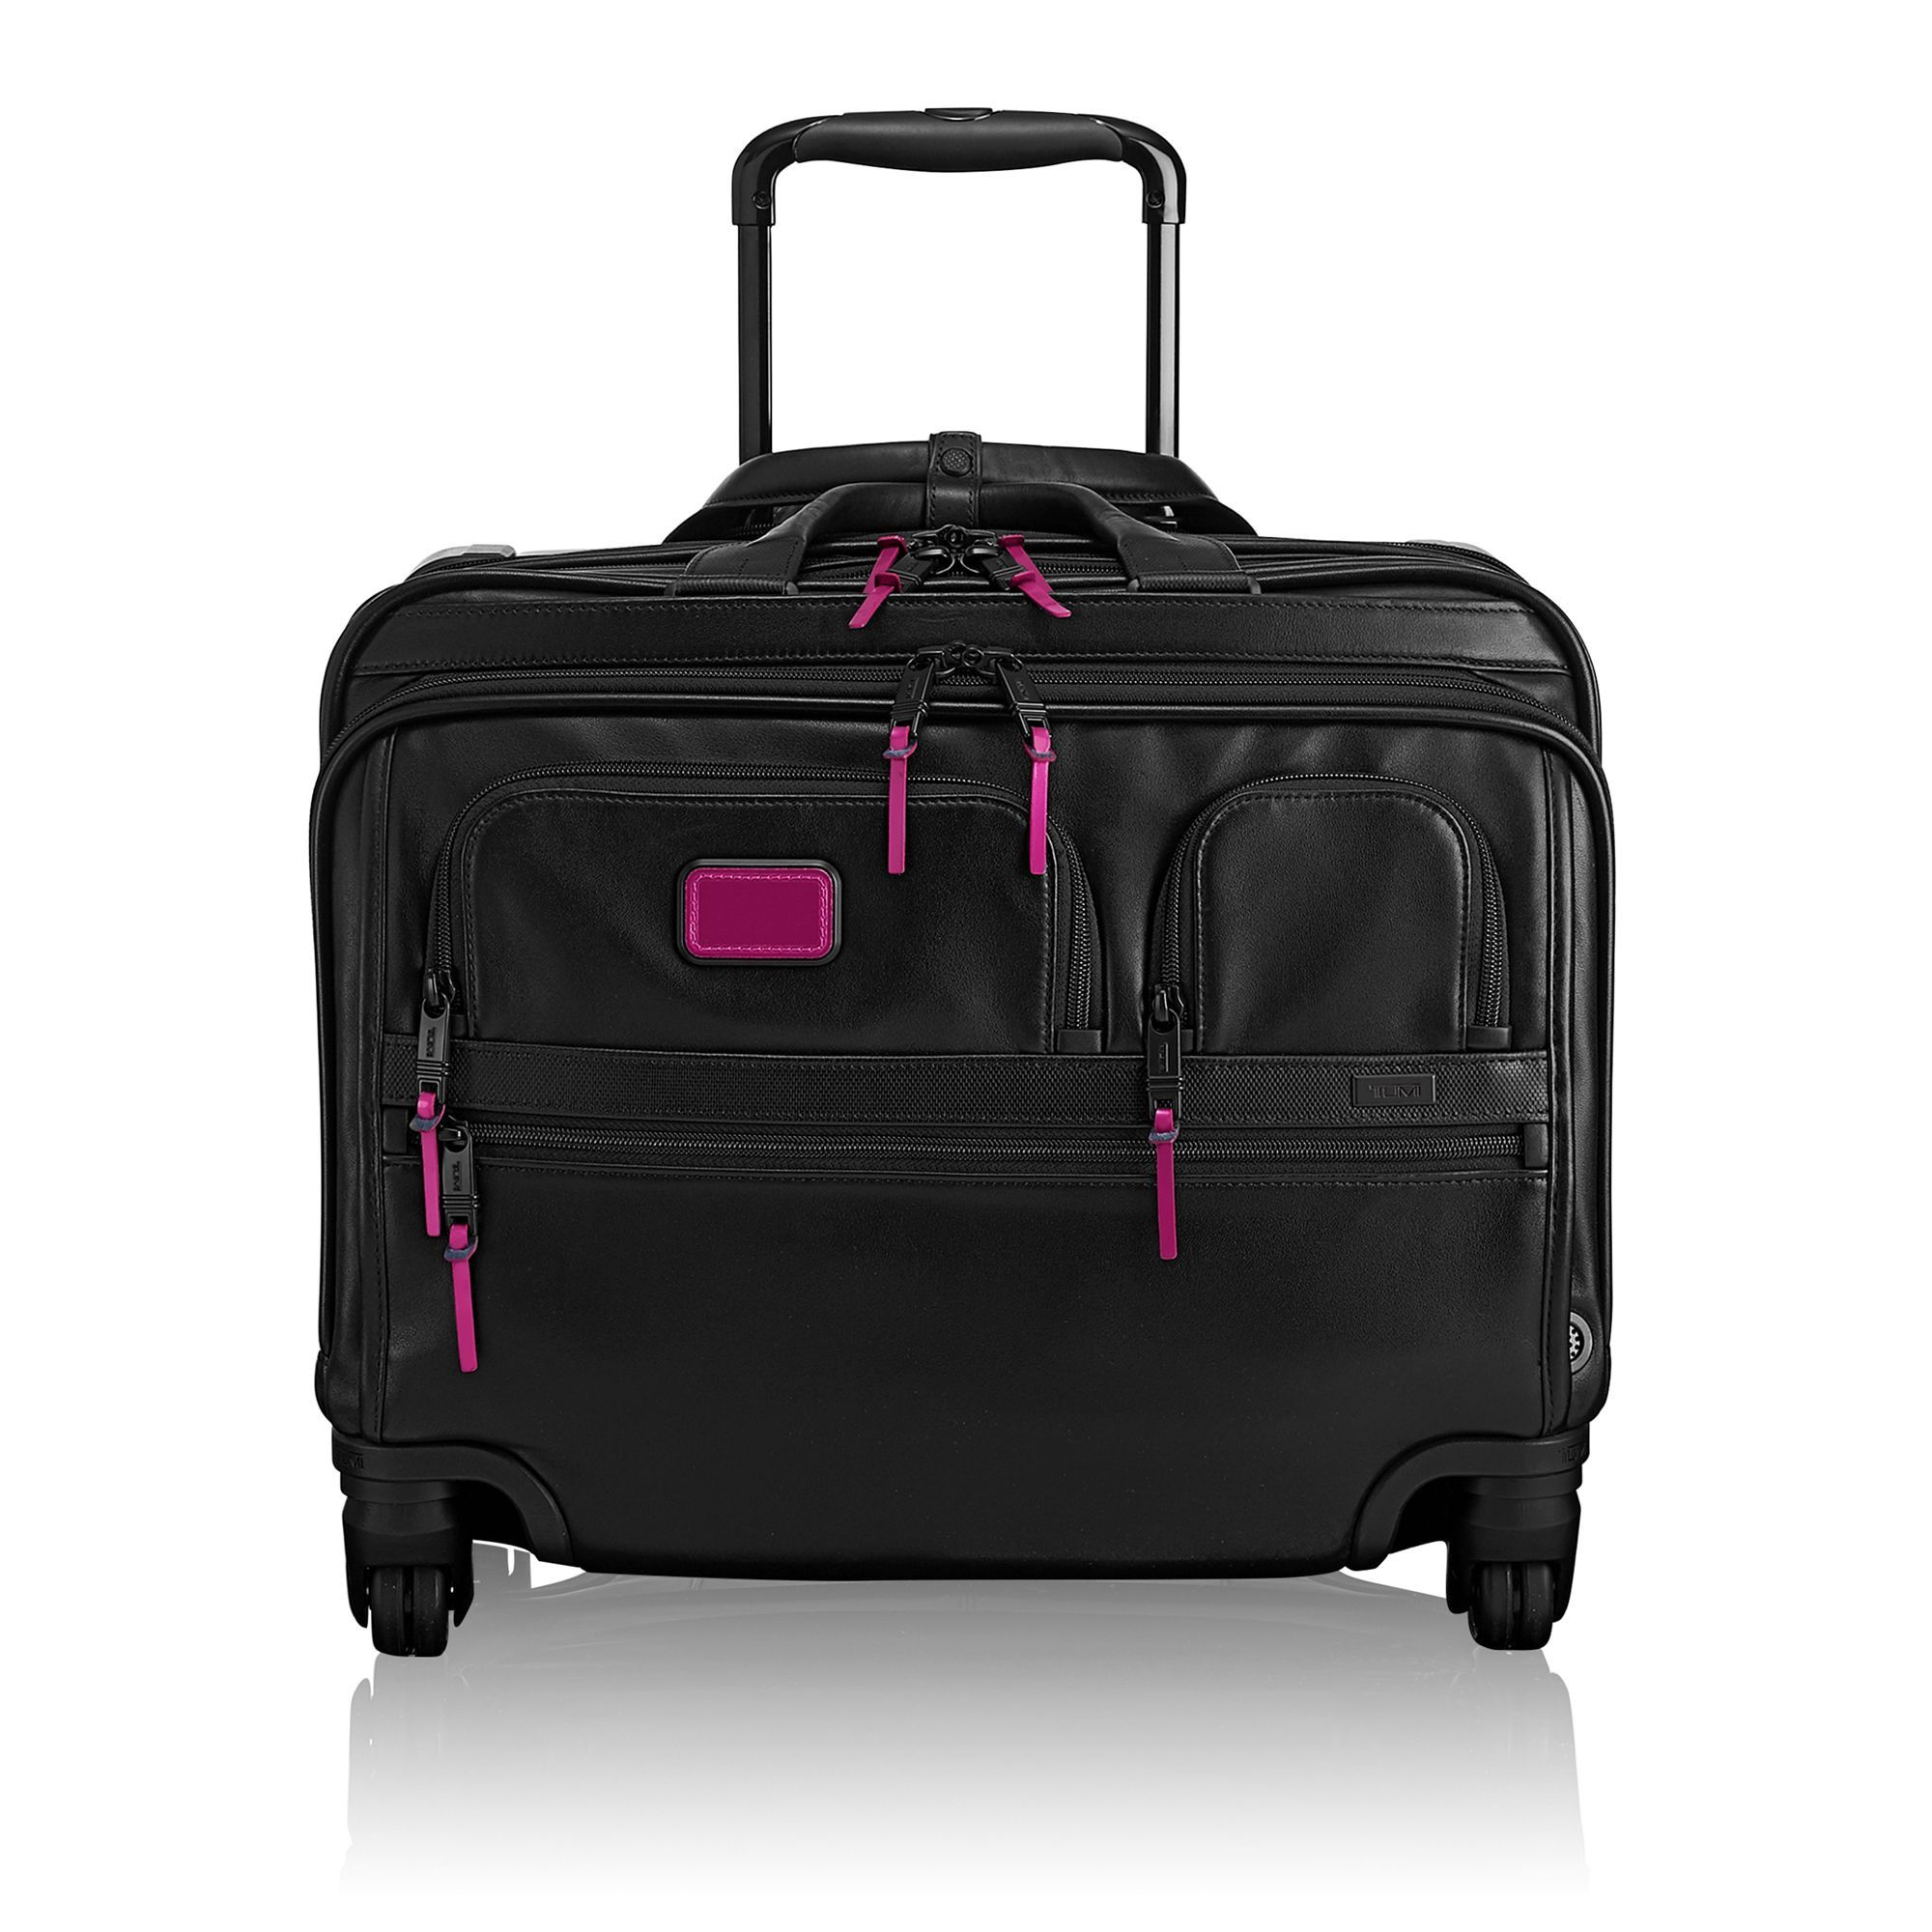 1c1662883 TUMI 4 Wheeled Deluxe Leather Brief with Laptop Case - Metallic Pink. #tumi  #bags #shoulder bags #hand bags #lining #leather #metallic #